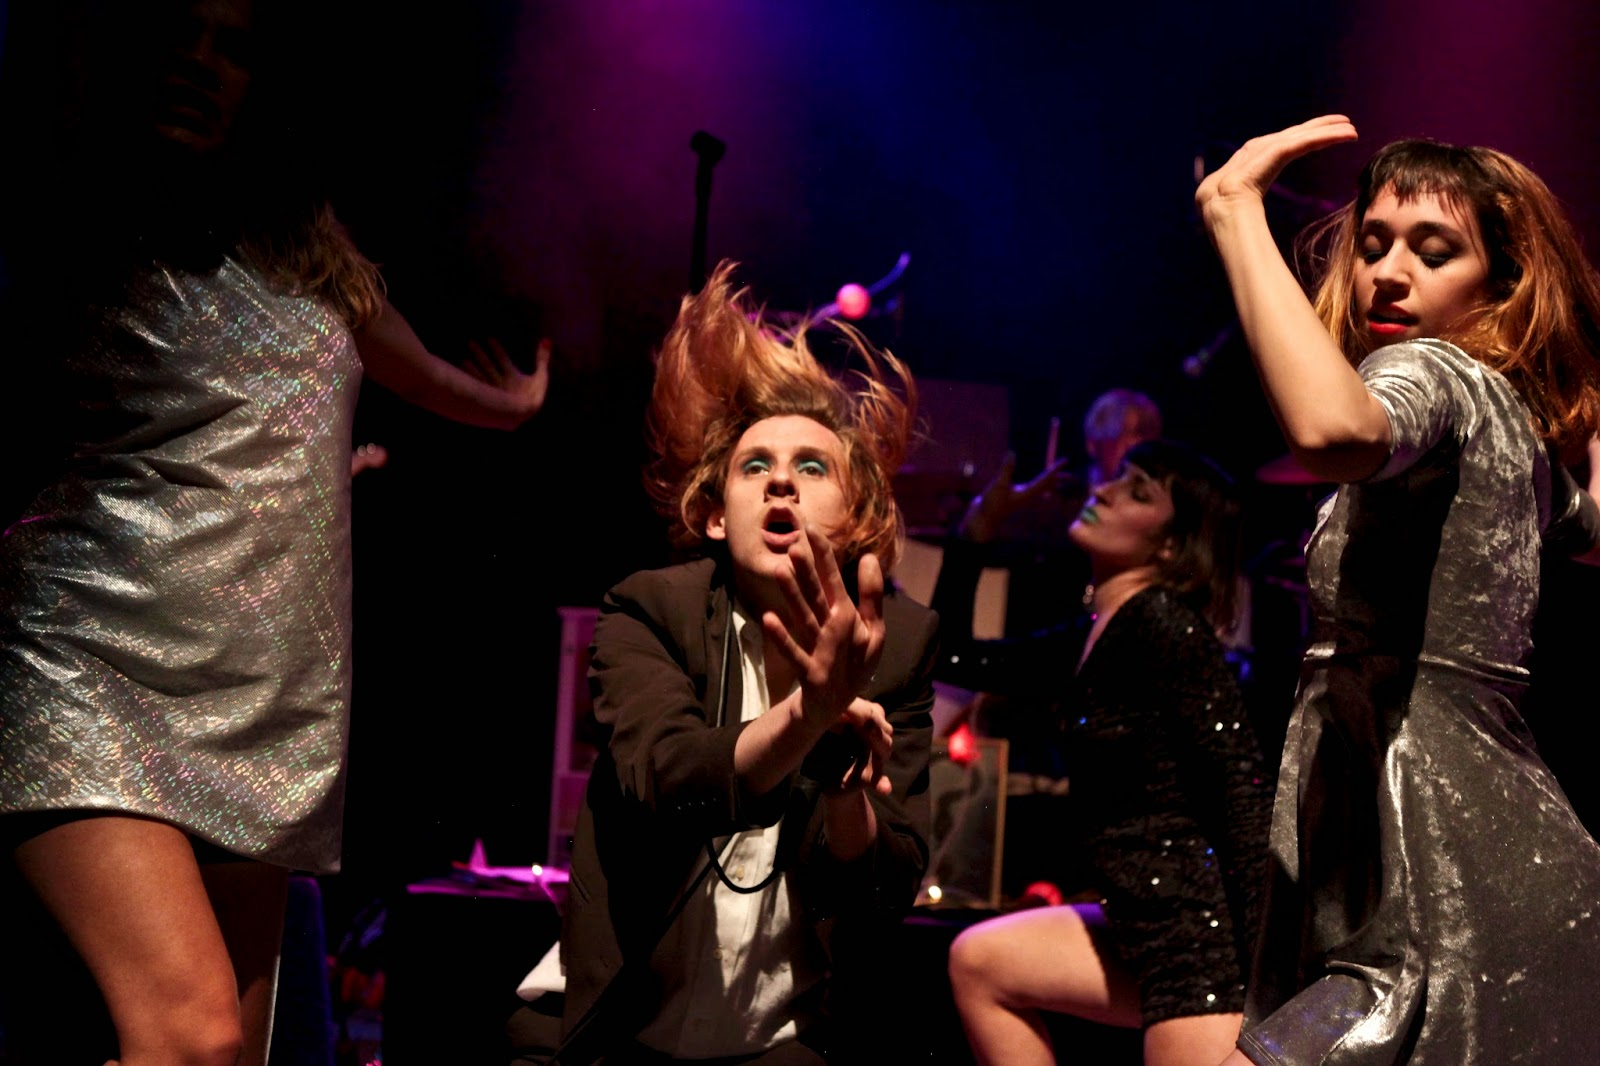 Foxygen and Star Power on stage and performing at the Fox Theater in Boulder, Colorado.